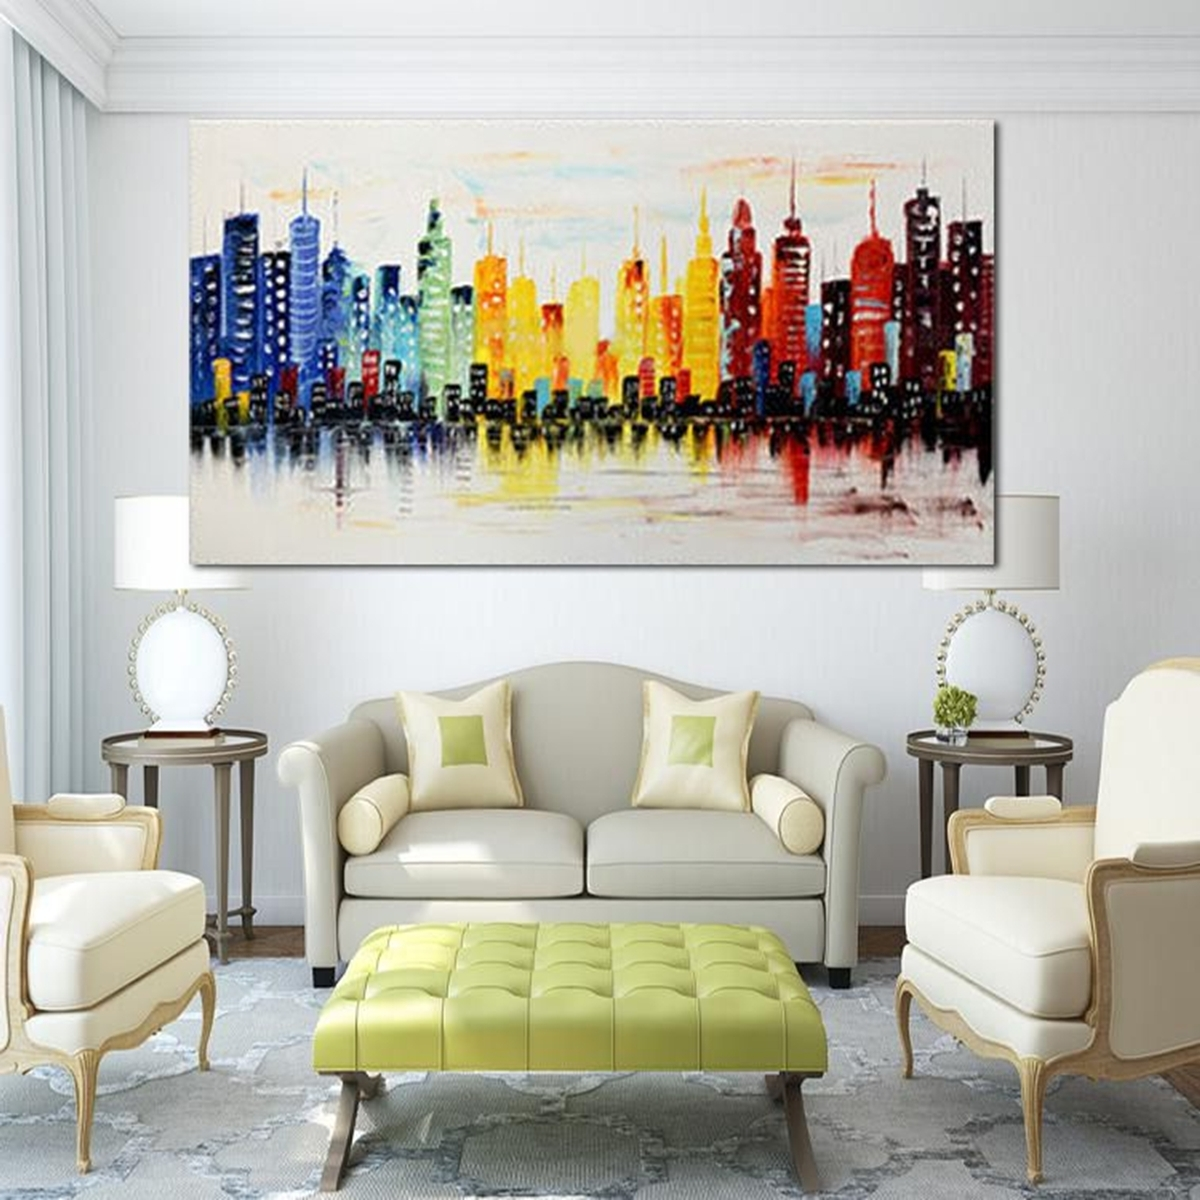 Most Recent 120X60Cm Modern City Canvas Abstract Painting Print Living Room Art Pertaining To Framed Wall Art For Living Room (Gallery 12 of 20)